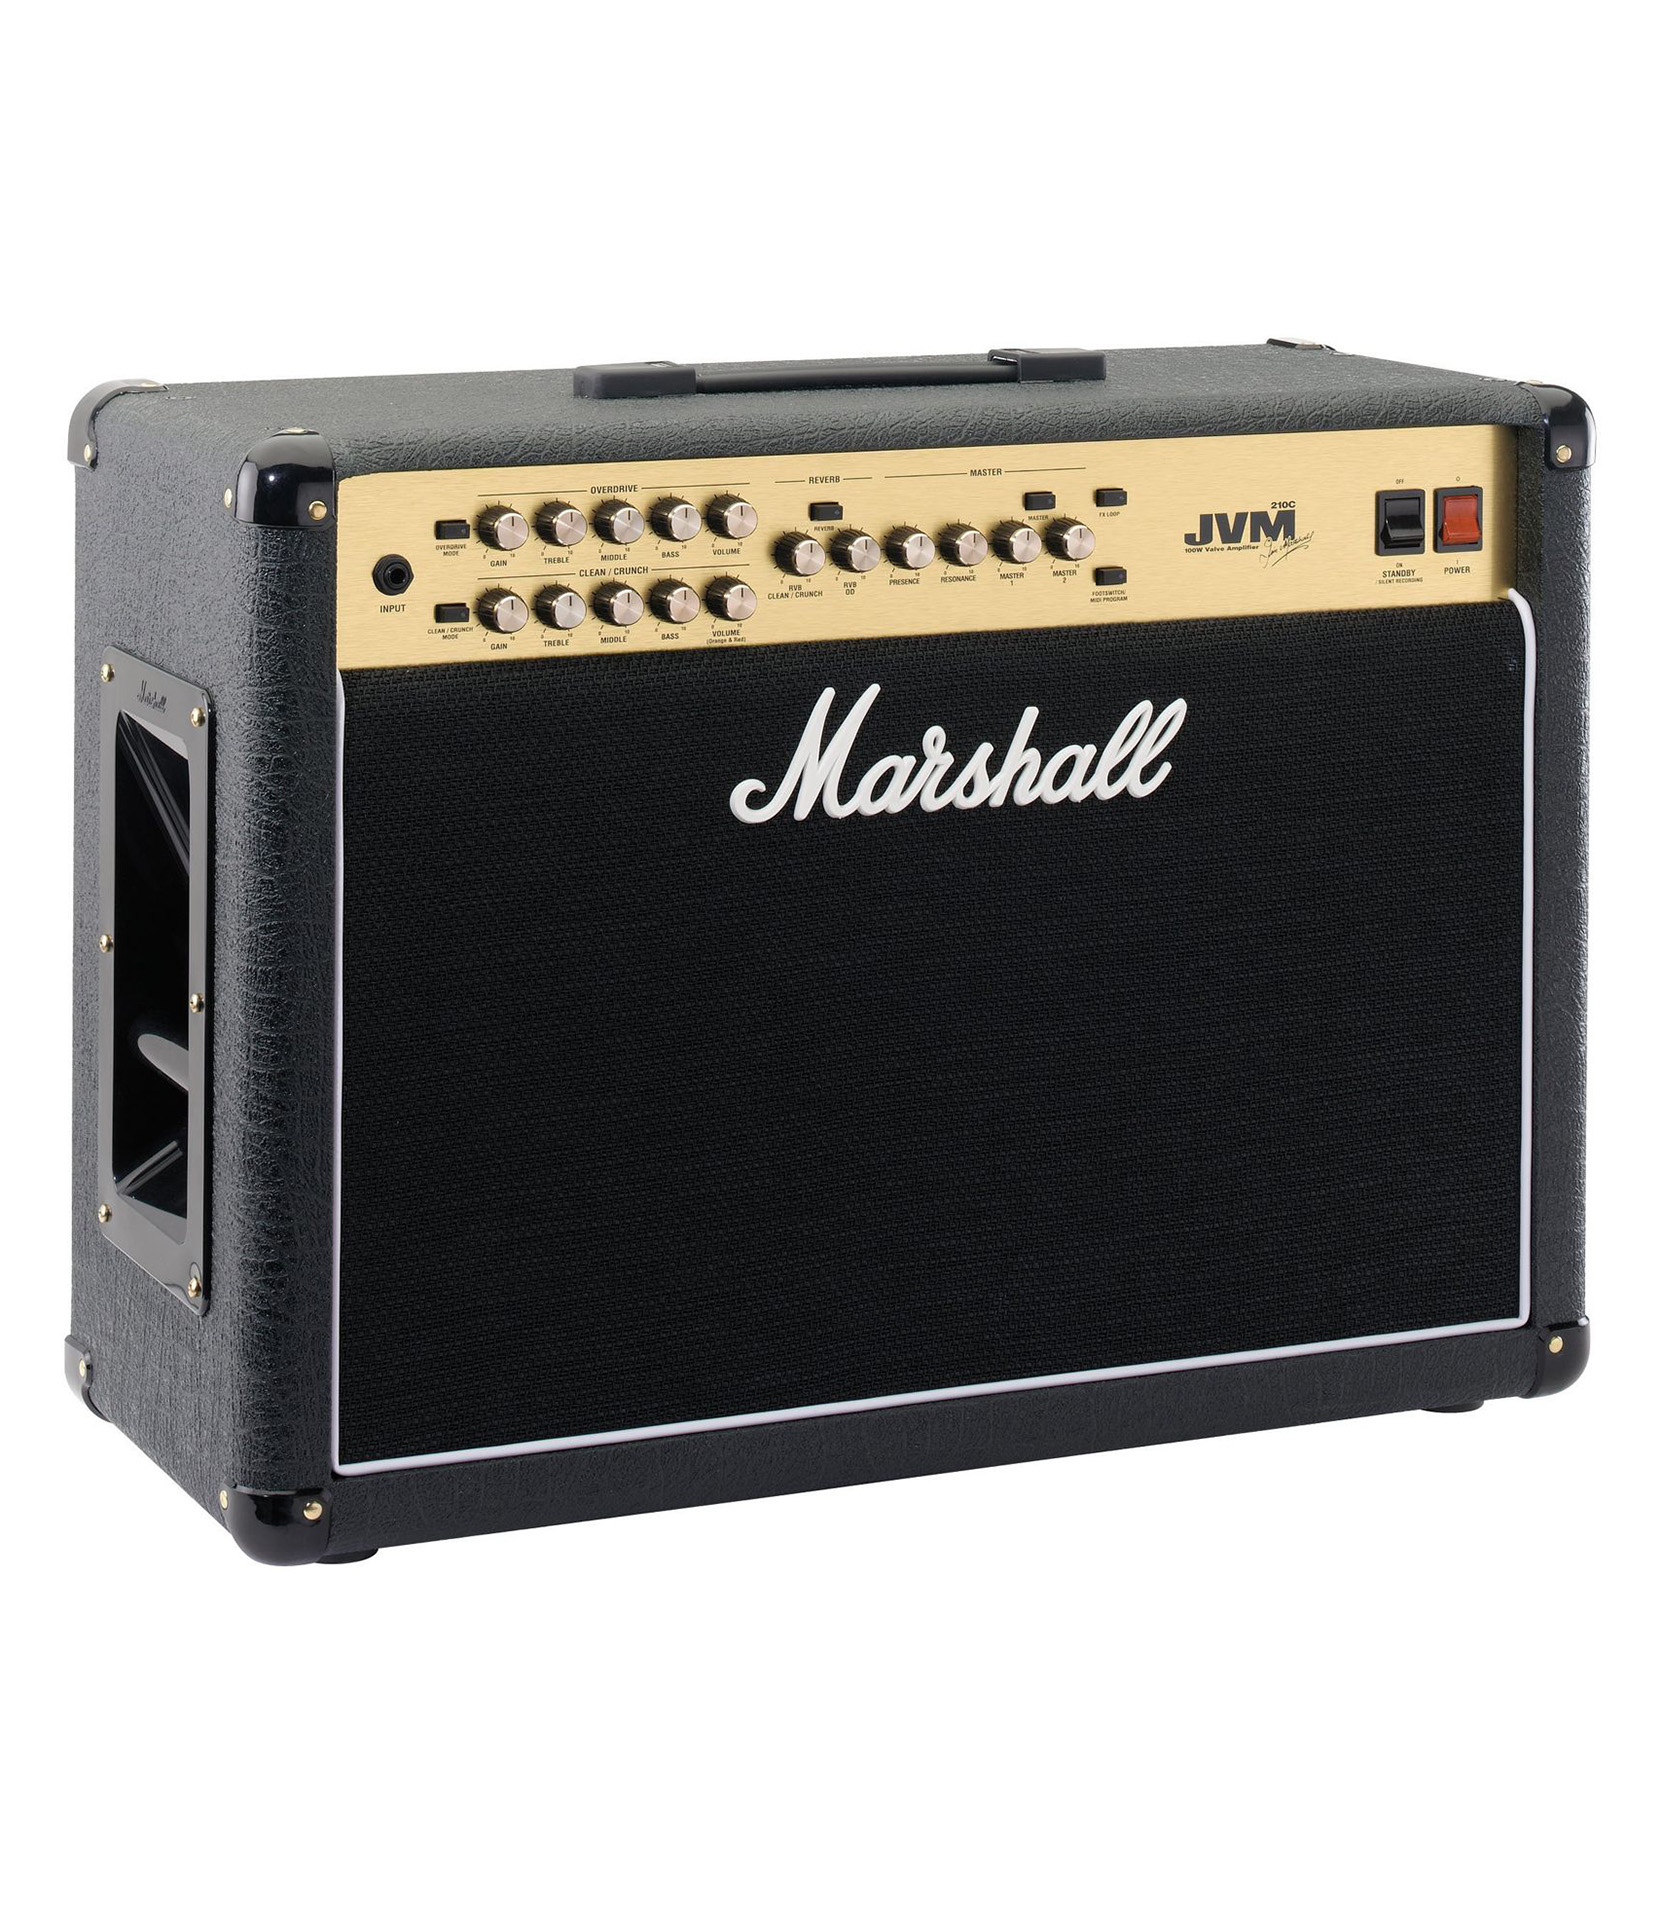 Buy Marshall - JVM 210CTube Guitar Amp 2 Channel